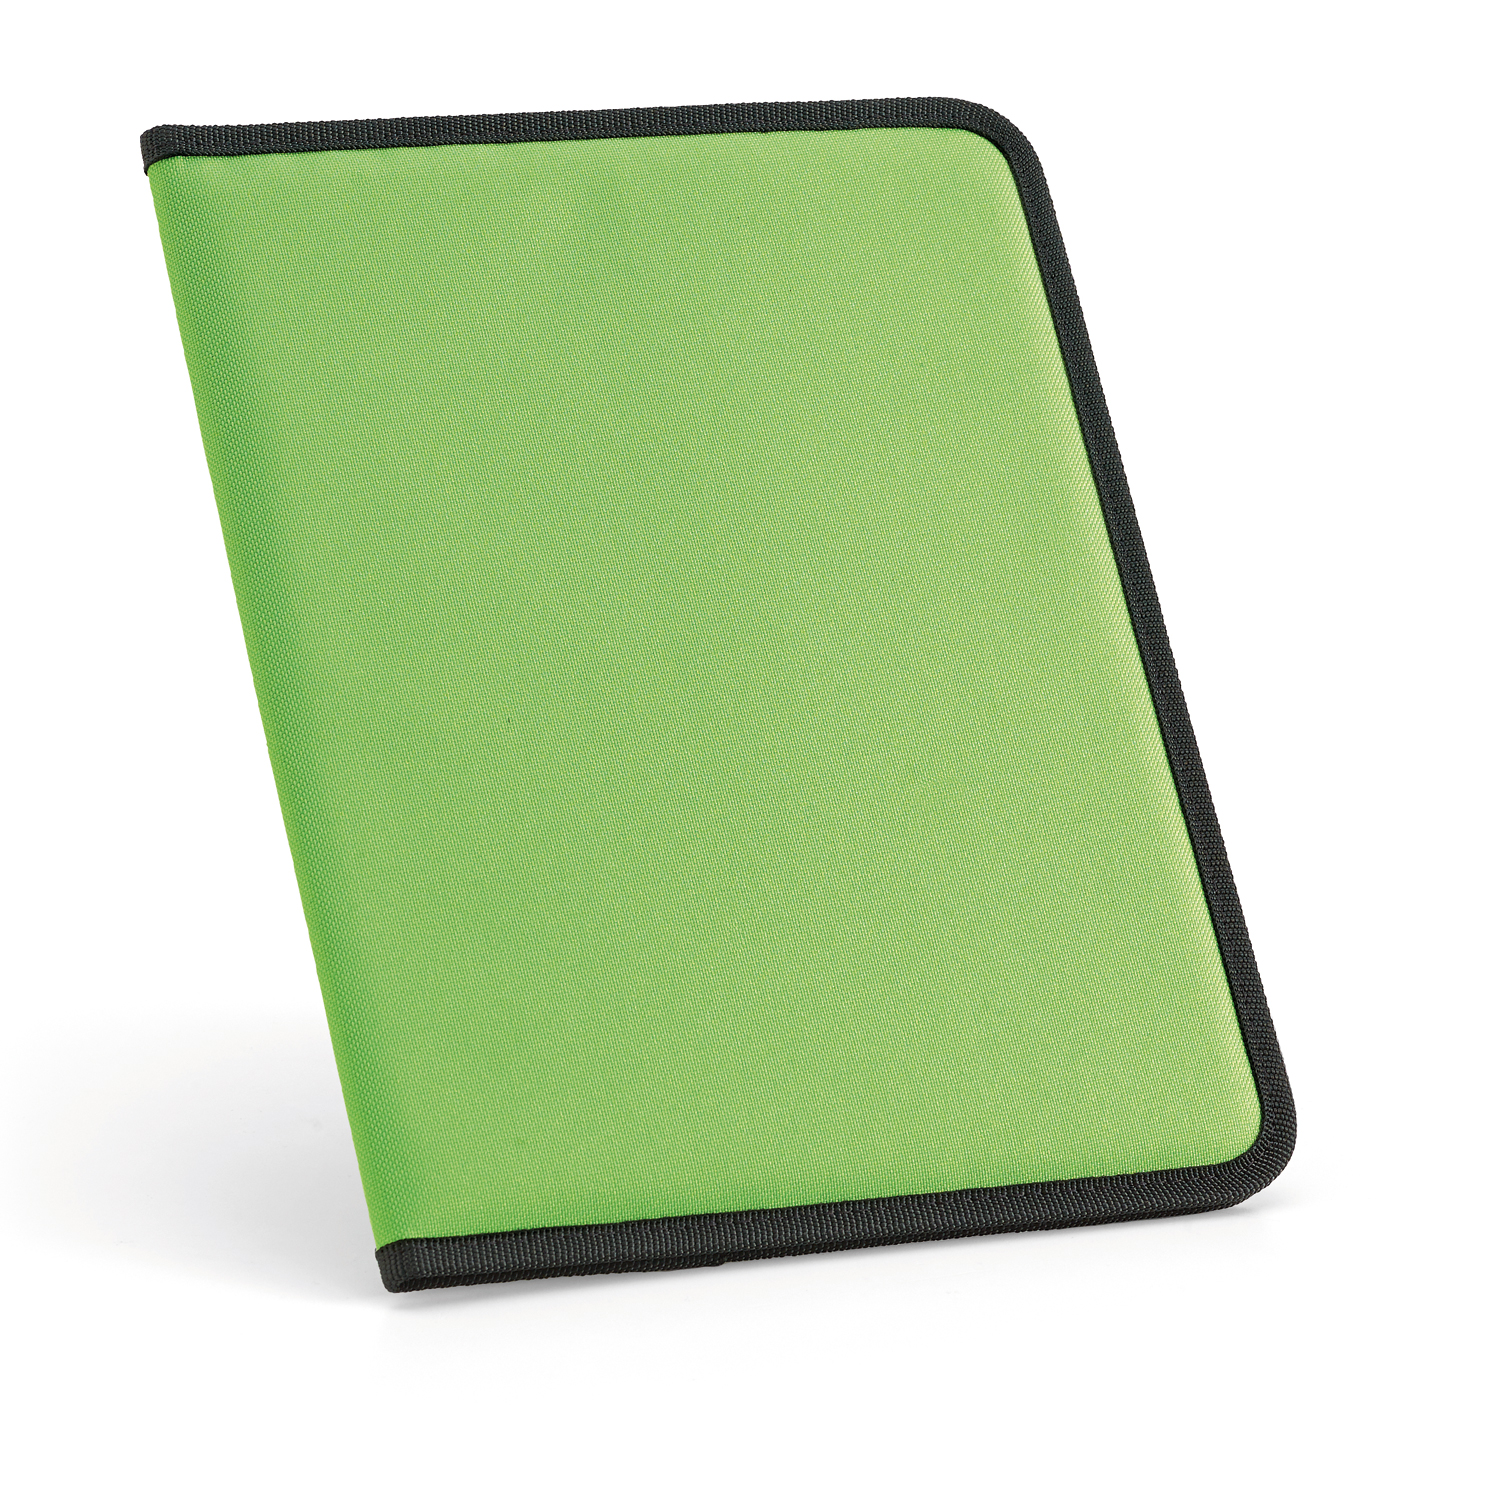 Folder 034 (A4 Document folder with 20 sheets inside) - hmi62034-09 (Green)